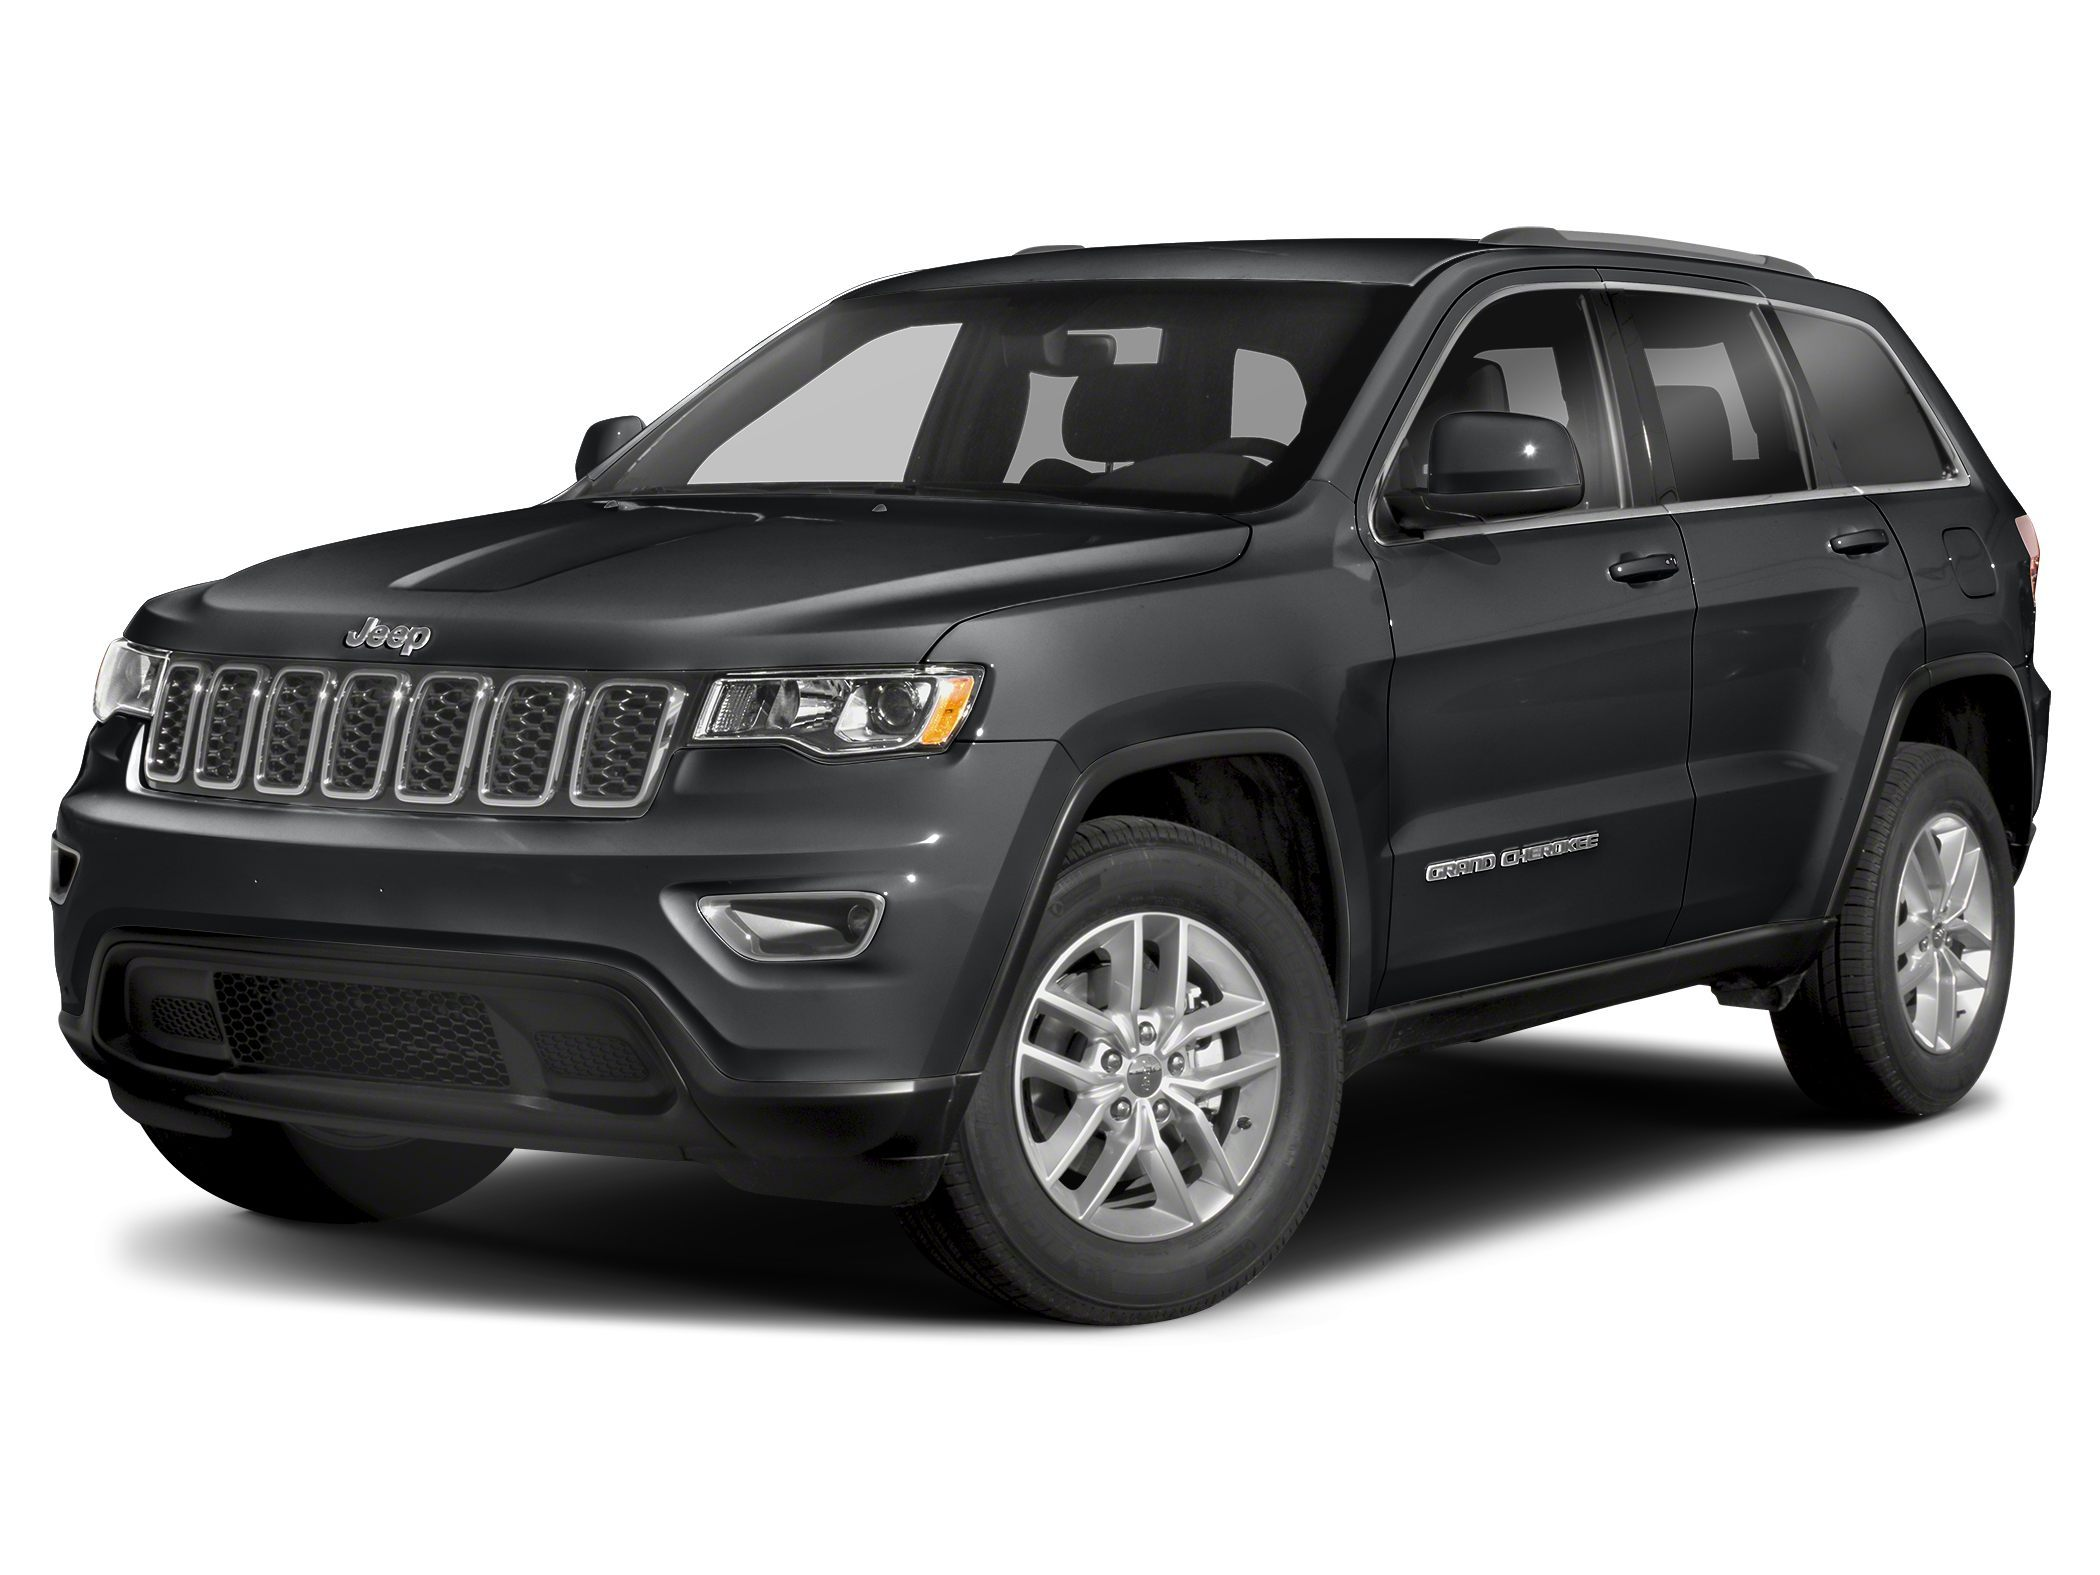 used 2020 Jeep Grand Cherokee car, priced at $38,887